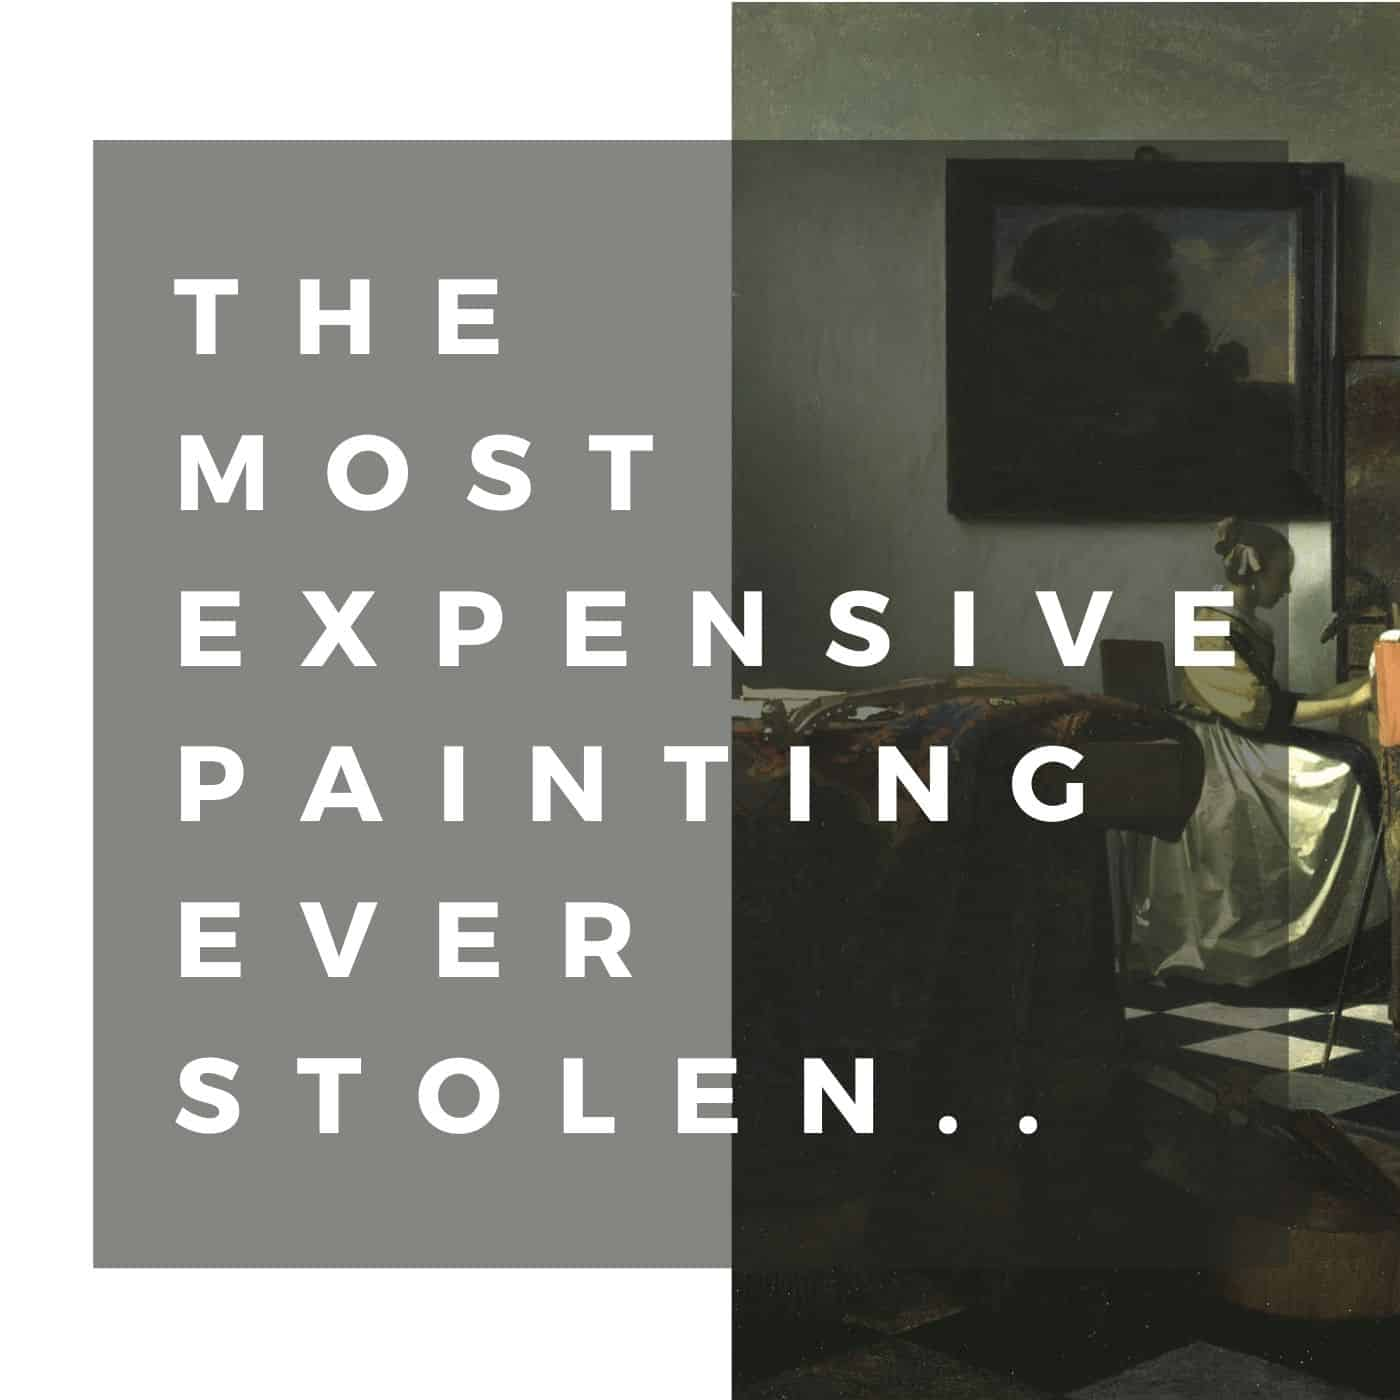 Most Expensive painting ever stolen